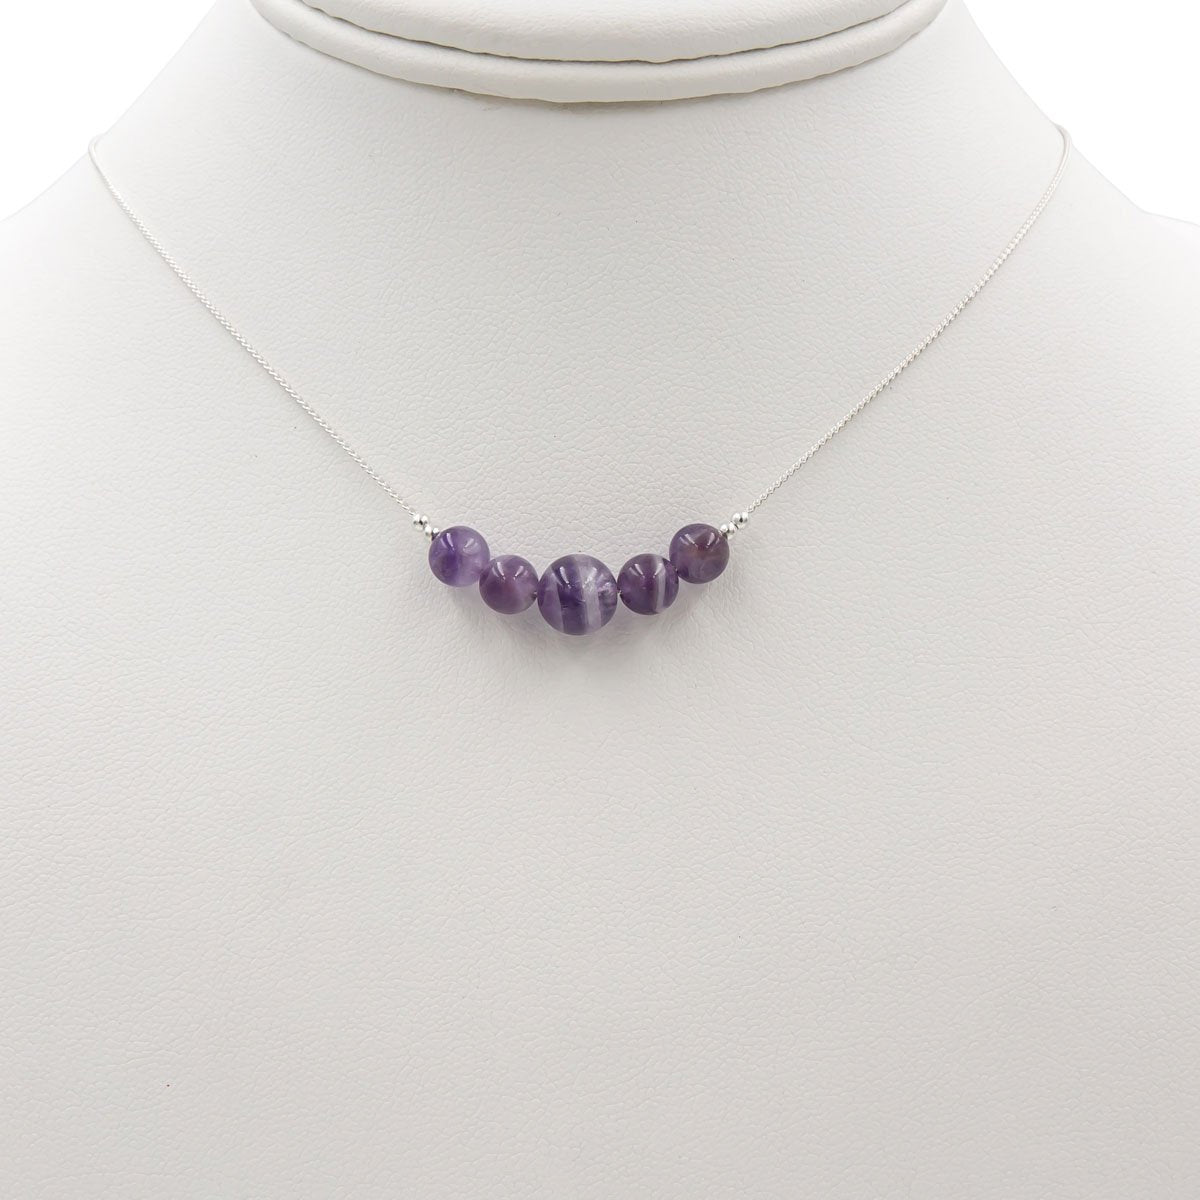 Handmade Amethyst sterling silver necklace